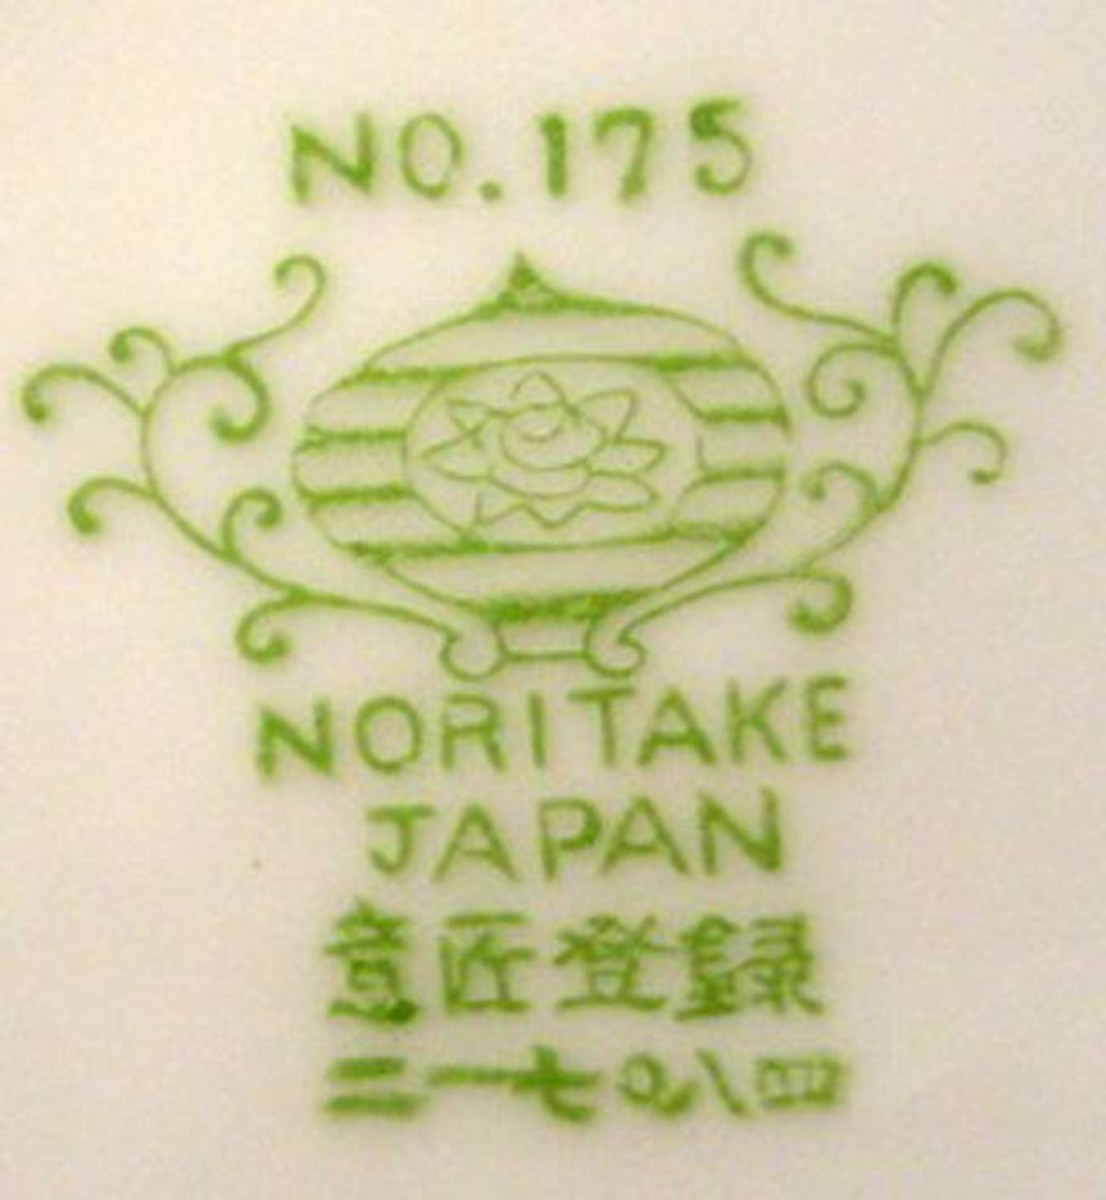 "The early productions are marked in green ""NO.175 HAND PAINTED NORITAKE JAPAN"" this would date them from 1906 to 1940"